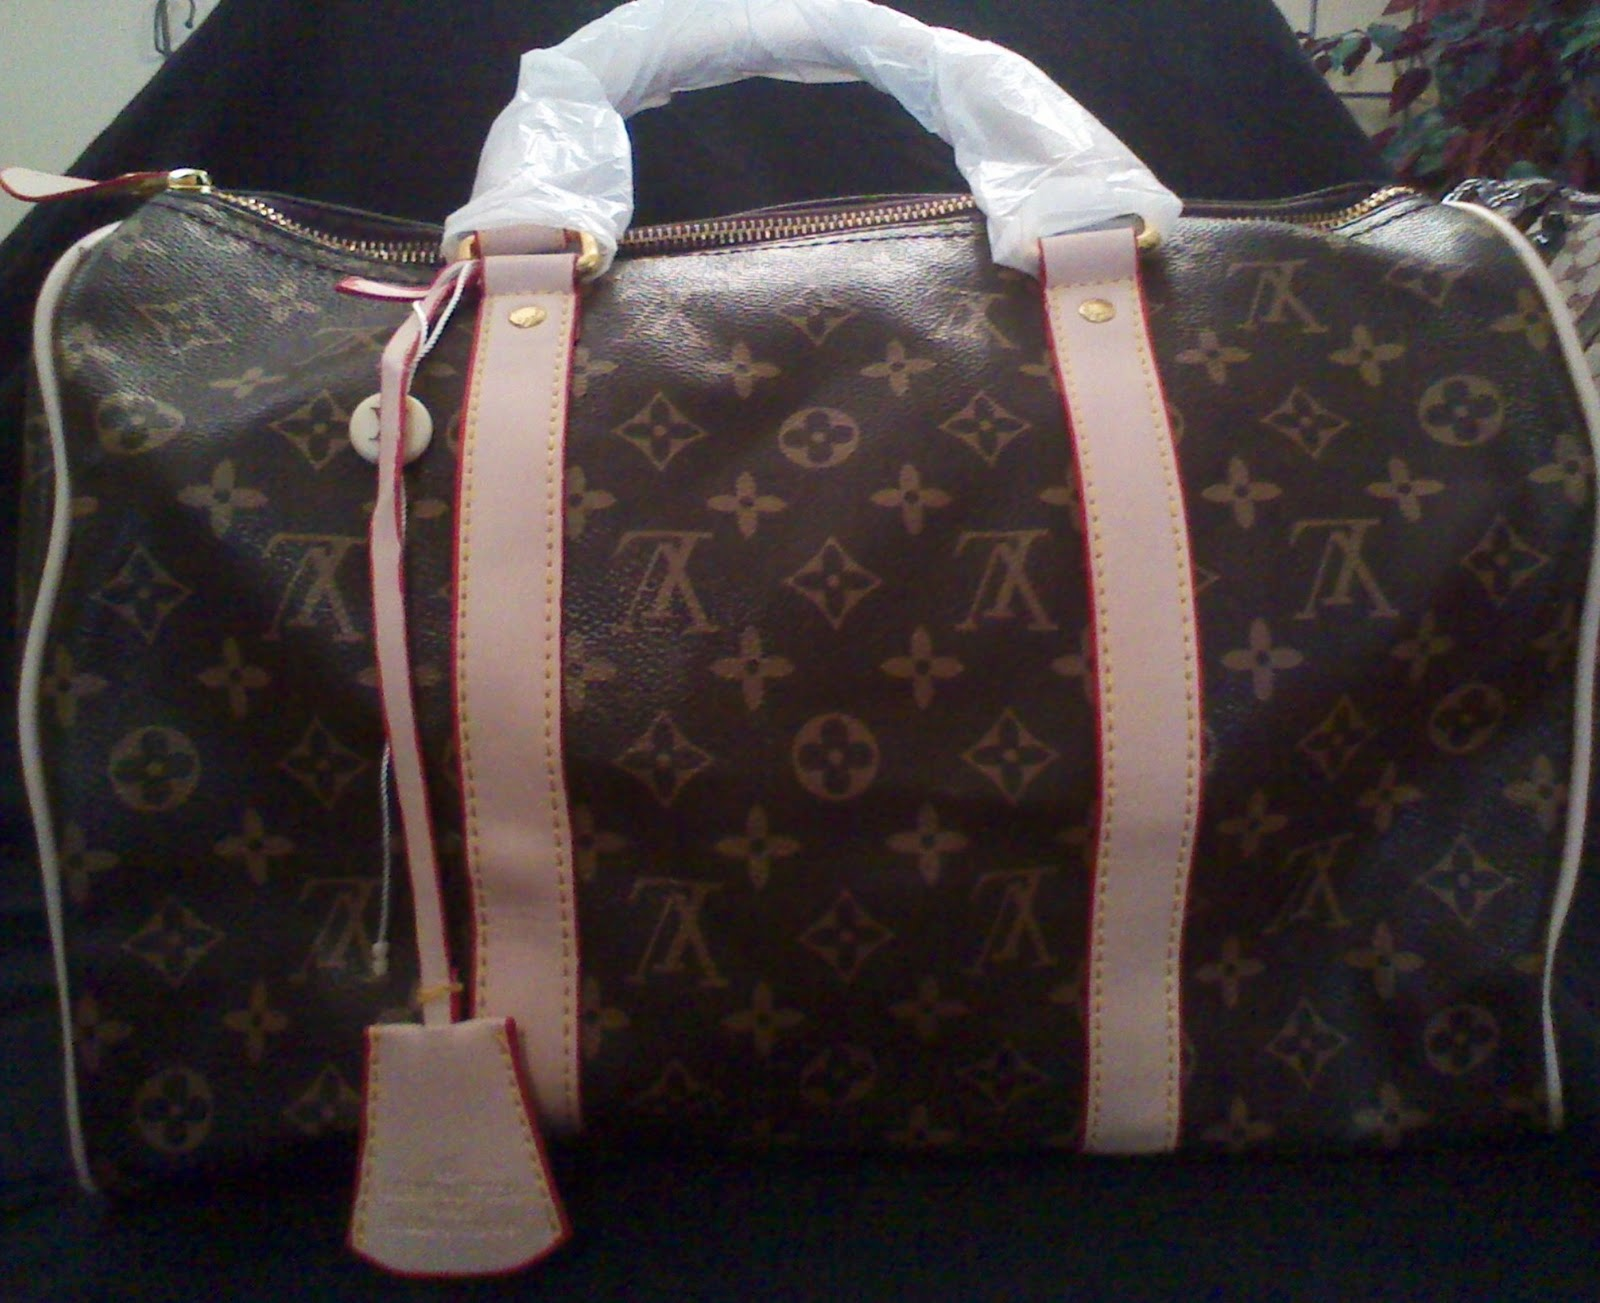 Louis Vuitton Trash Bags Gallery The Gallery Handbags Louis Vuitton Replica 1431f